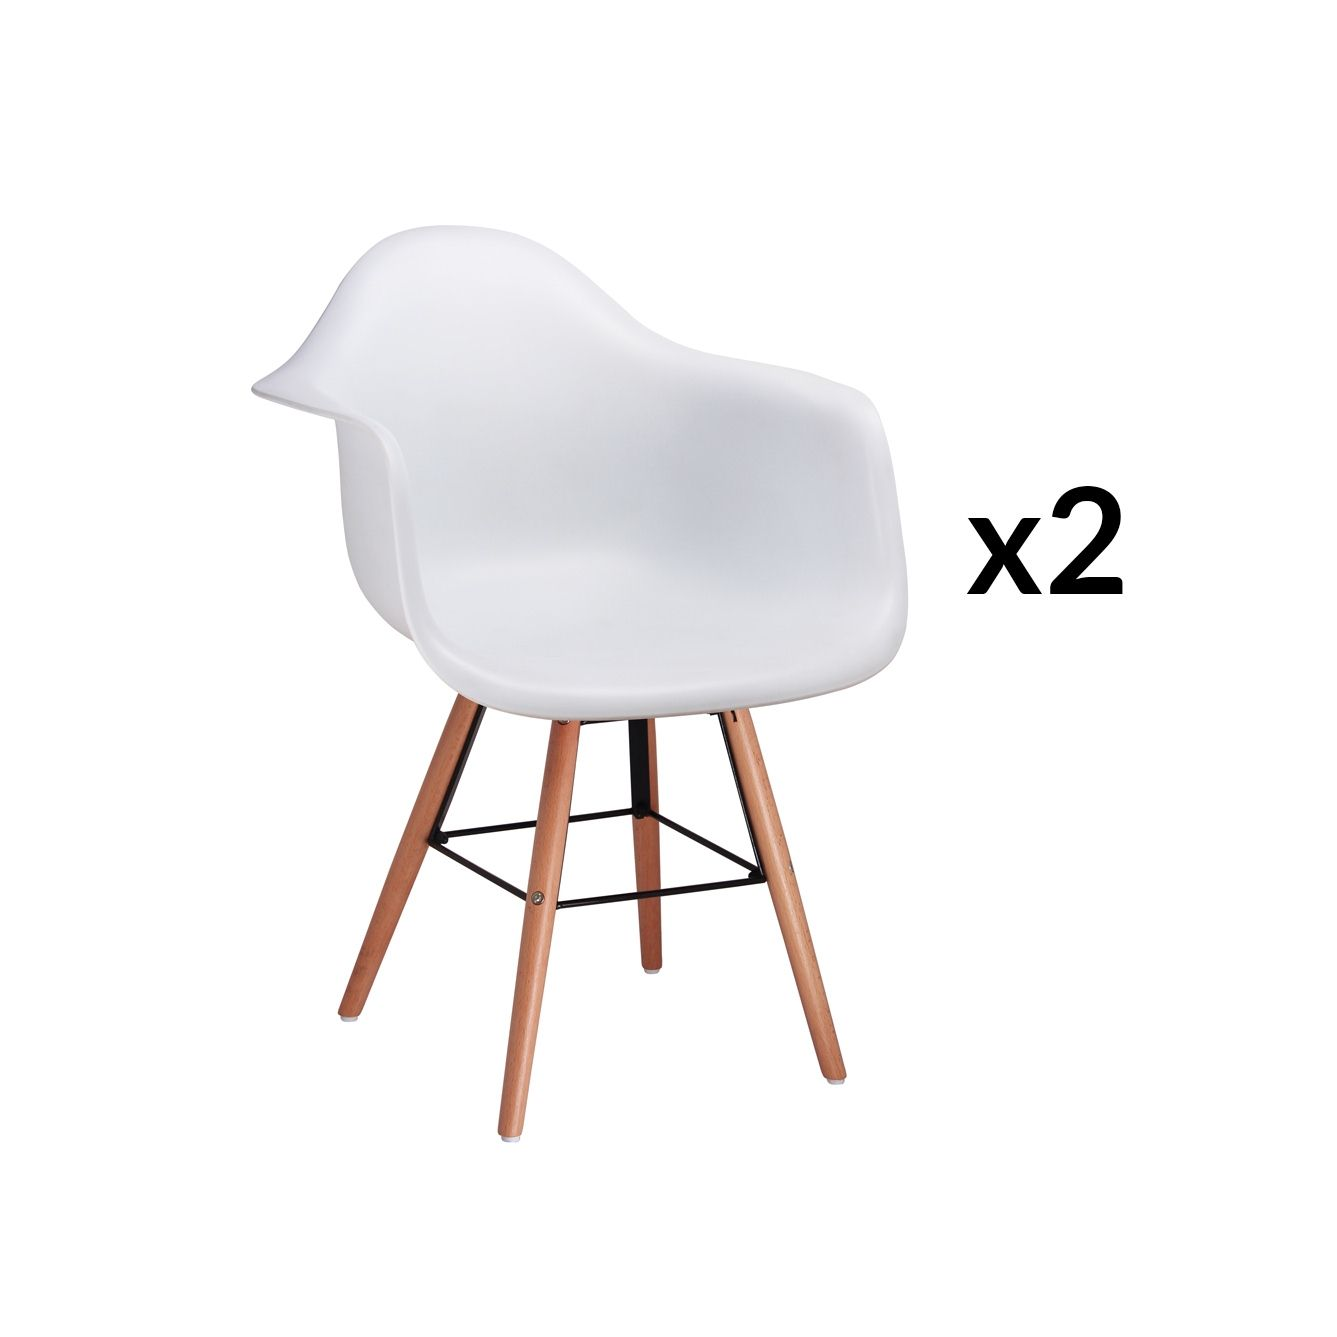 Lot Chaise Scandinave Lot De 2 Chaises Scandinaves Blanches Avec Accoudoirs Nina